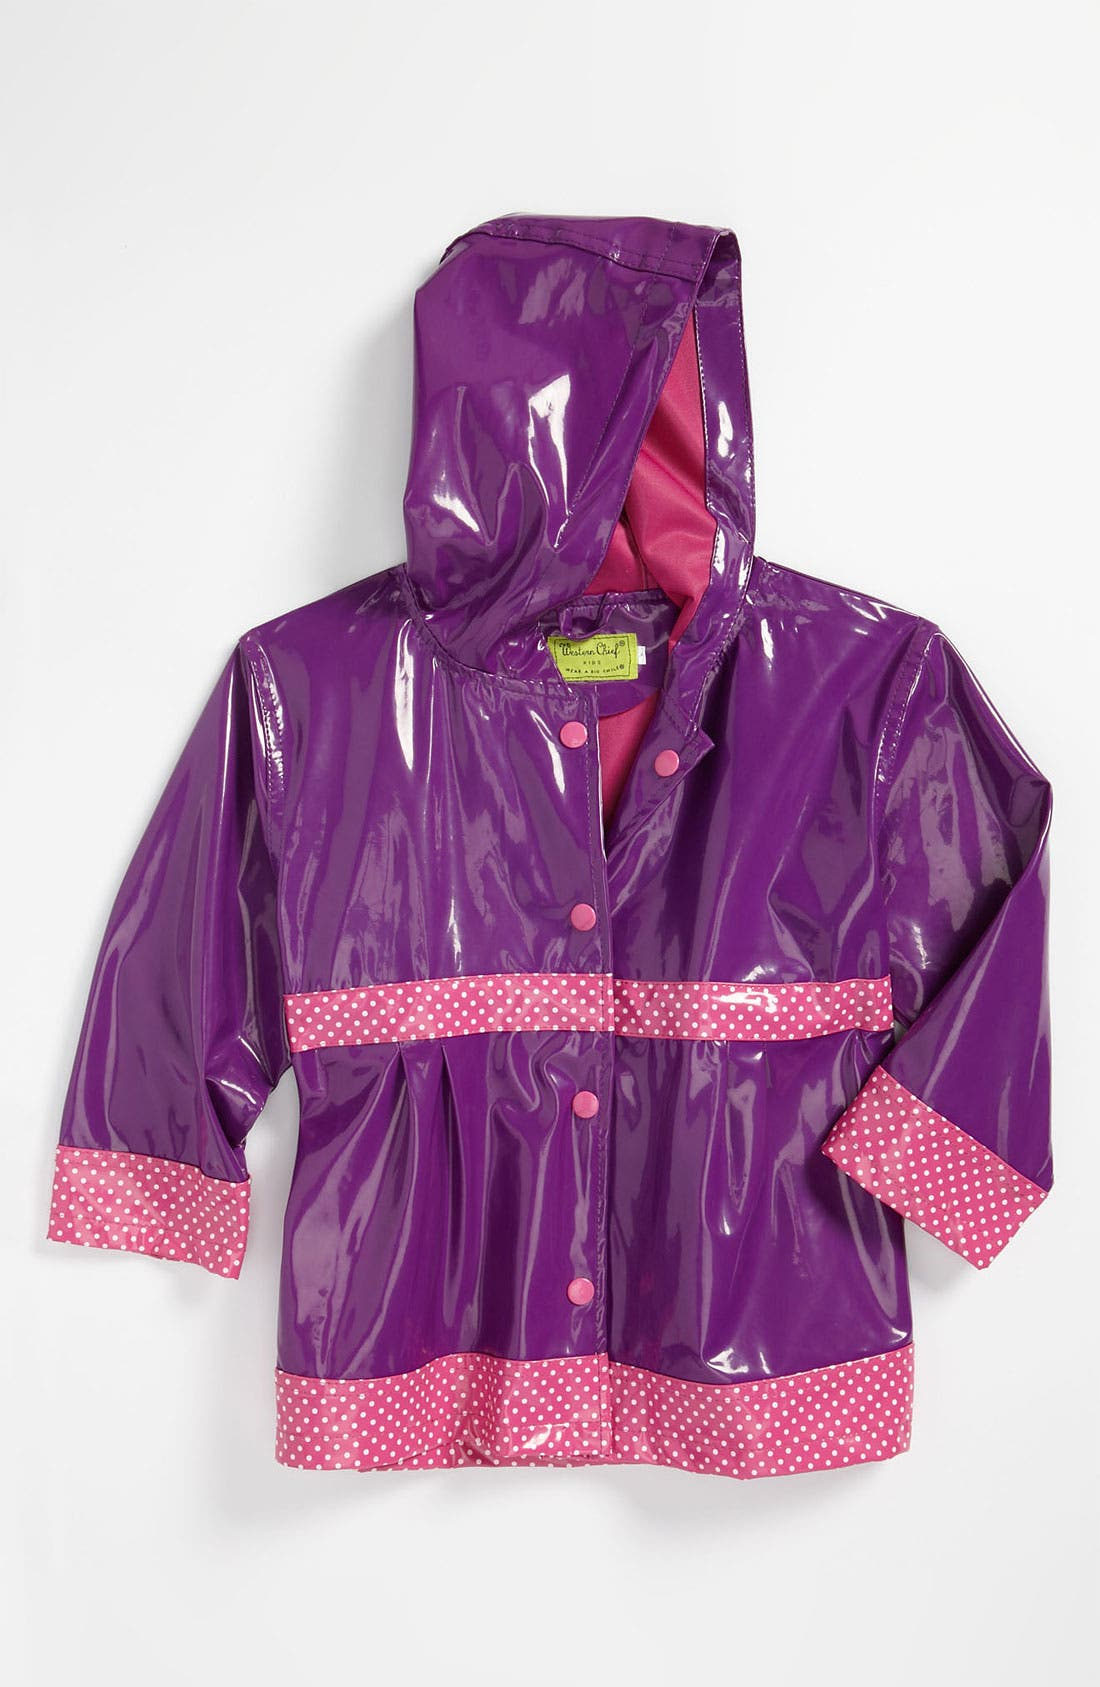 Alternate Image 1 Selected - Western Chief 'Olivia' Raincoat (Toddler, Little Girls & Big Girls)